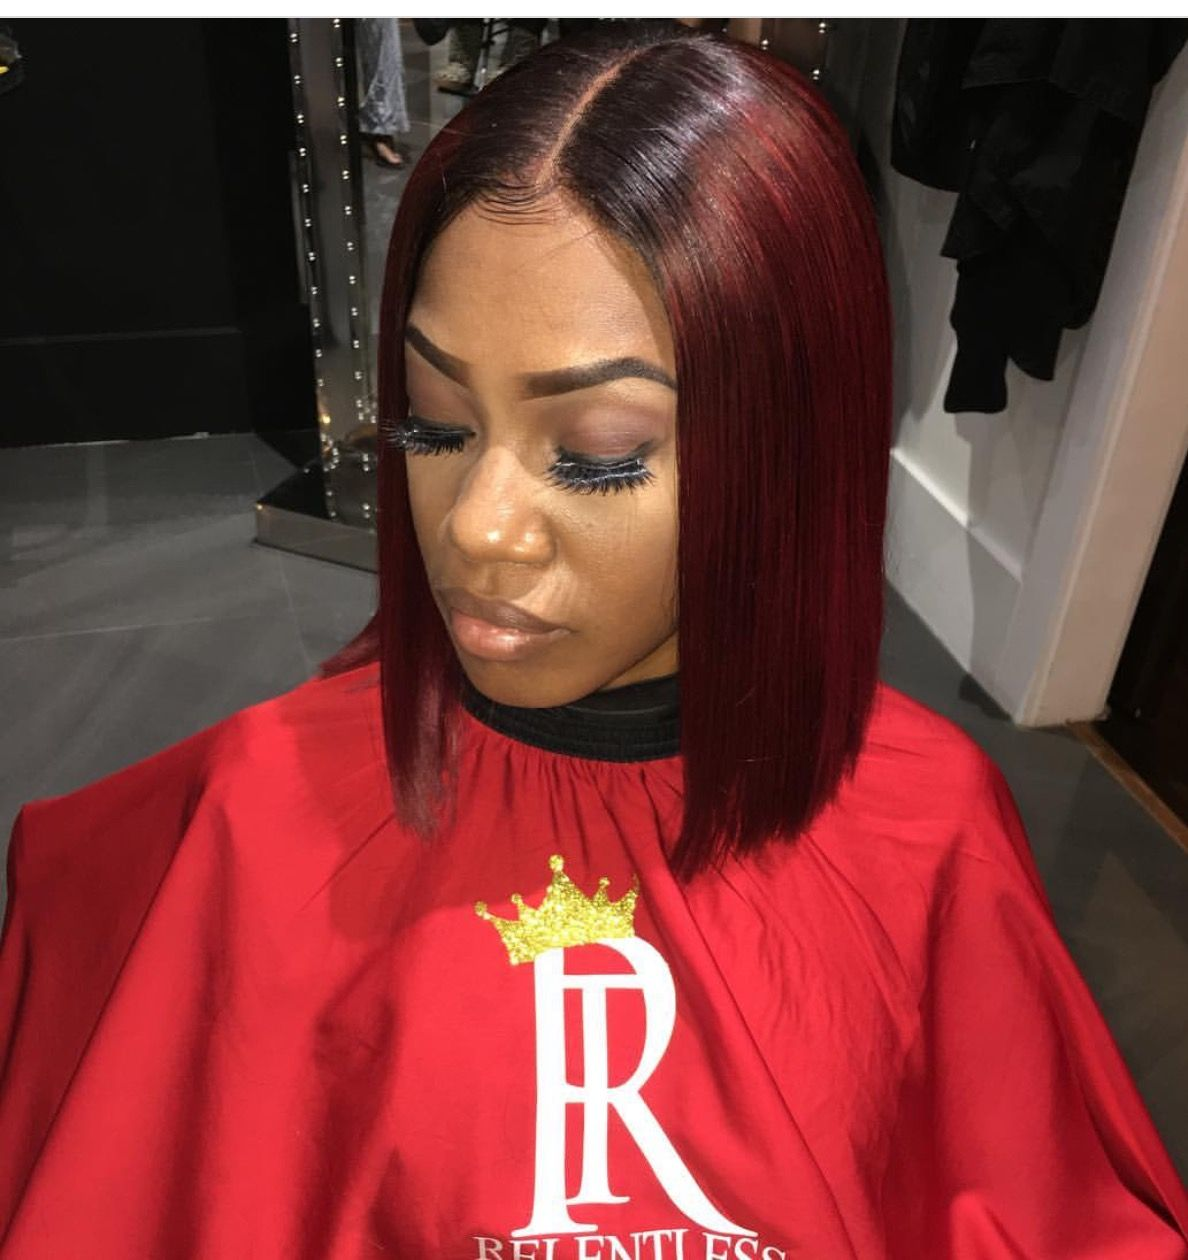 blunt girls The best blunt haircut ideas of 2018 are right here click on through for the haircut ideas you'll want for winter through spring 2018.